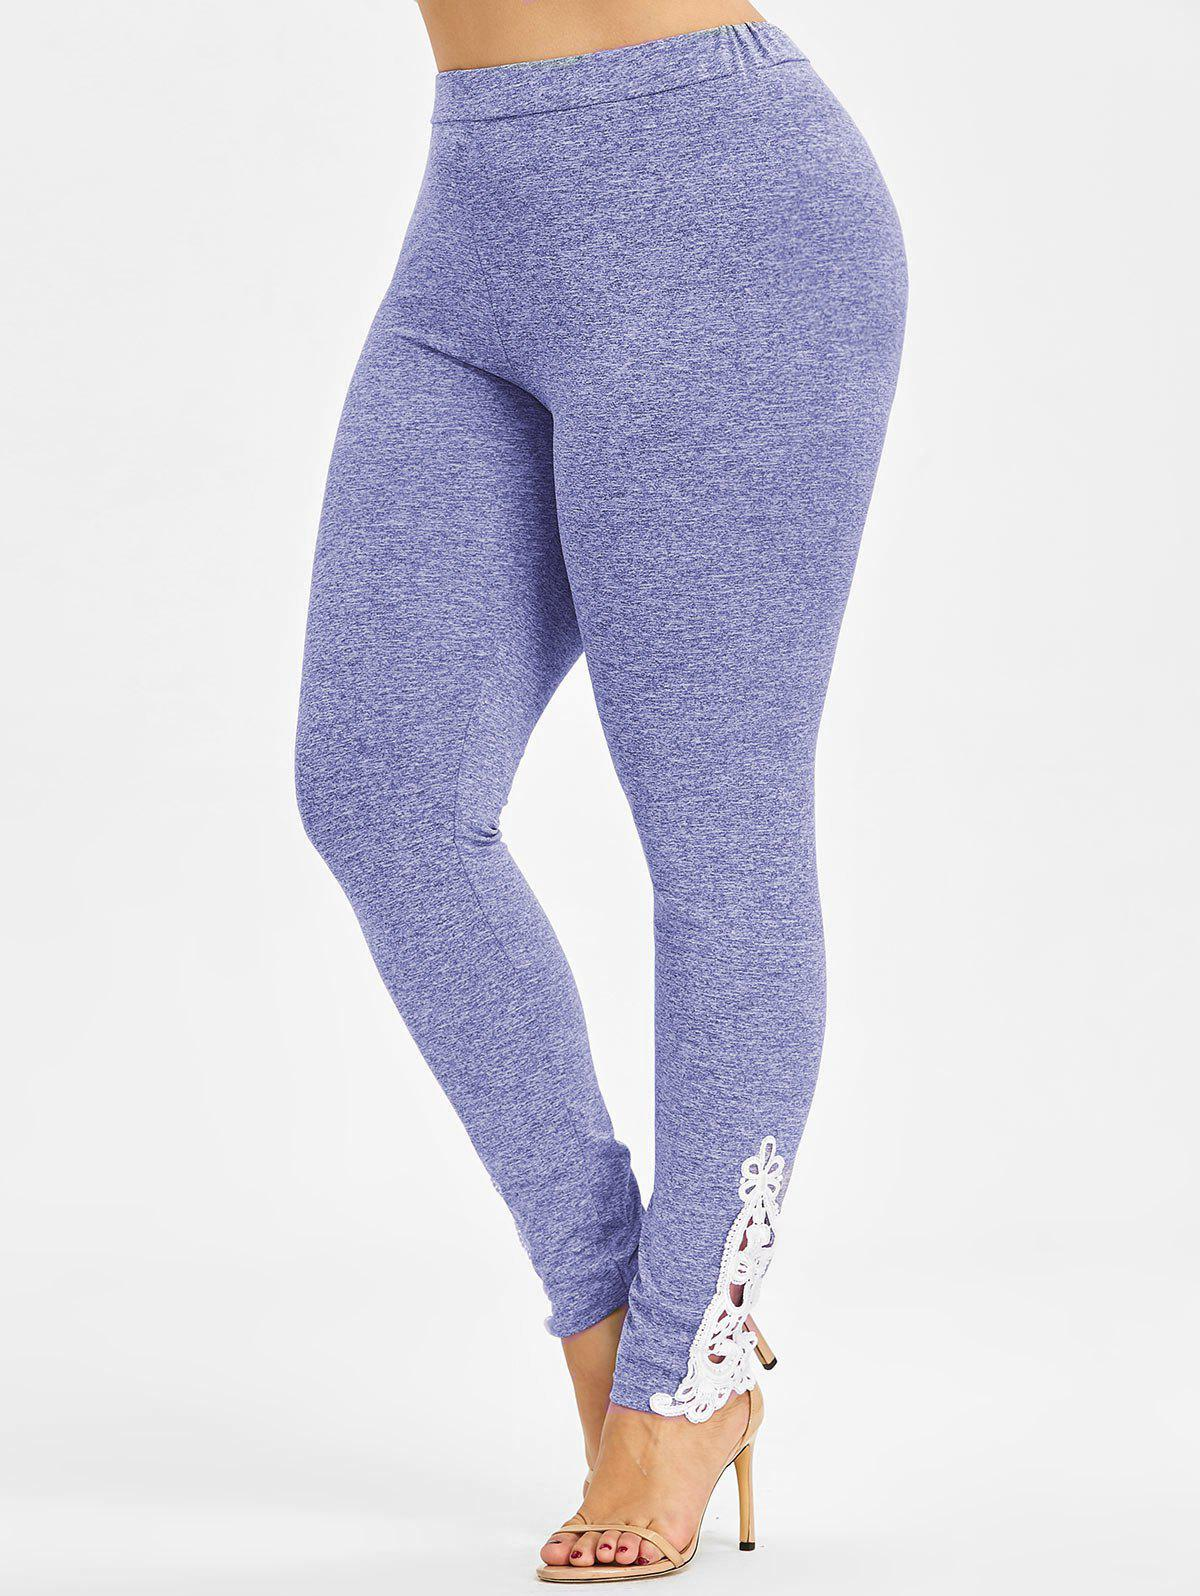 High Waisted Plus Size Leggings - CROCUS PURPLE 3X